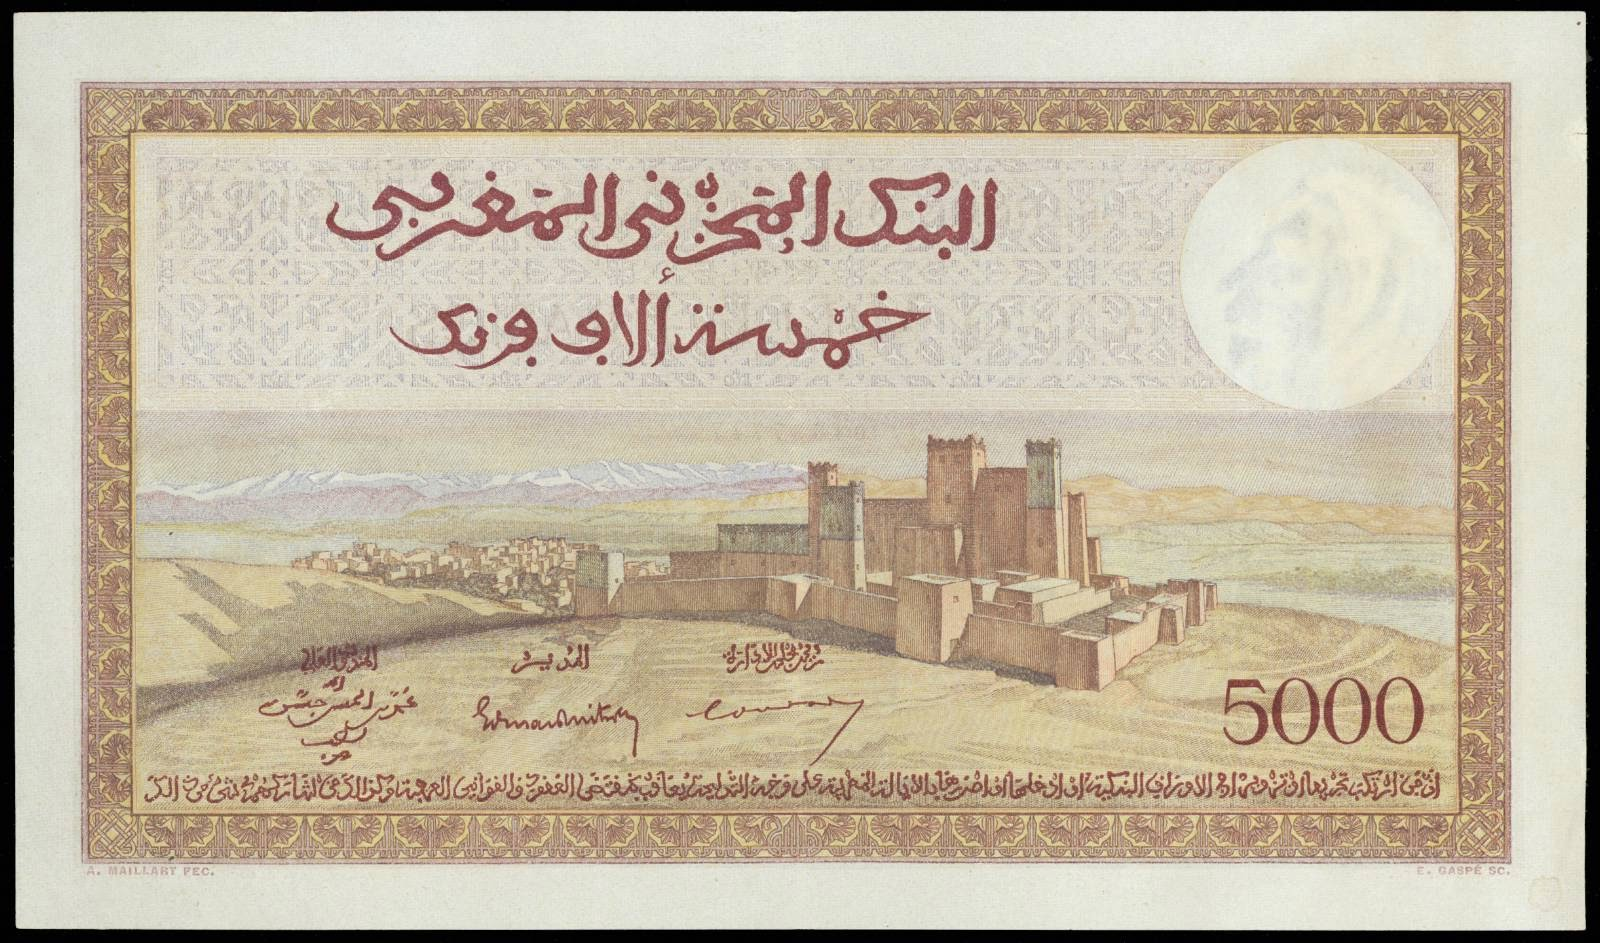 Morocco 5000 Francs bank note 1949 Kasbah of Ait Ben Haddou